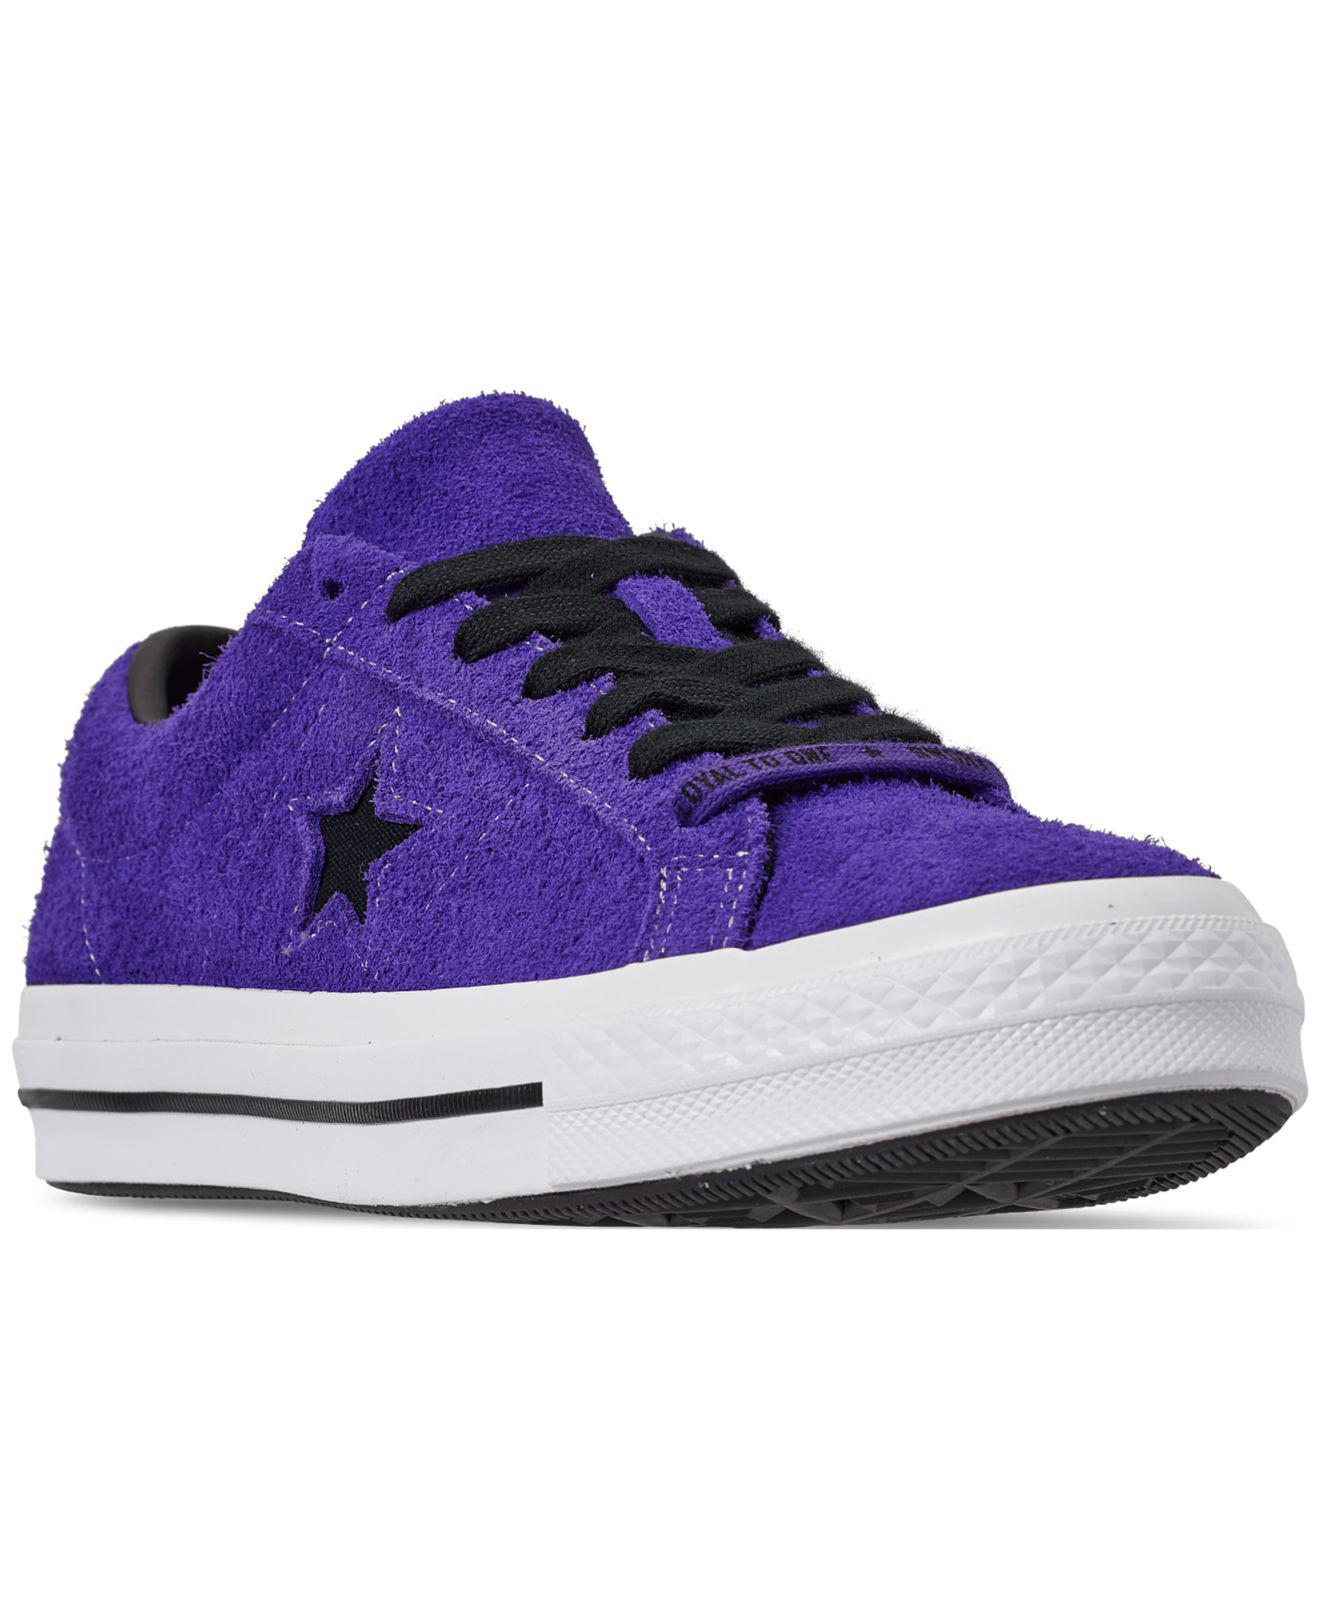 a857a49f75b Lyst - Converse Dark Star Vintage Suede Oxford Sneakers in Purple for Men - Save  47%